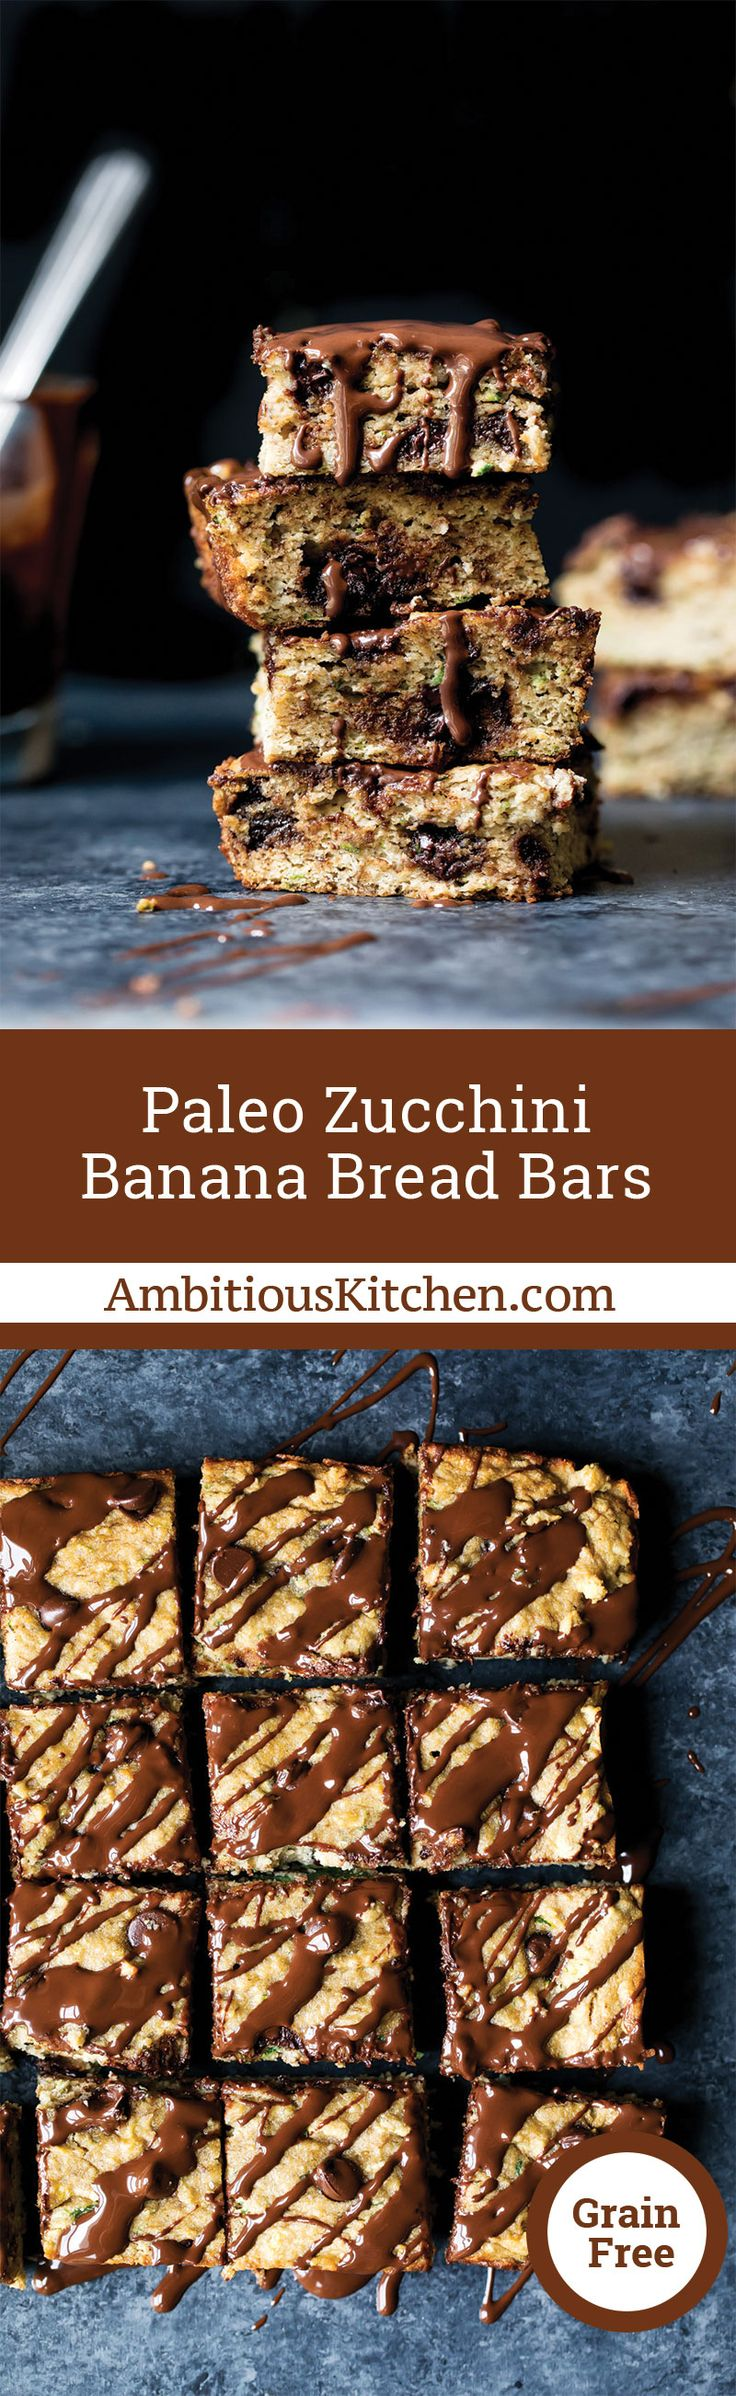 Paleo Zucchini Banana Bread Bars with chocolate chips are the BEST way to enjoy a healthier treat when you have a sweet tooth. They also make a great snack since they're packed with fiber and protein.